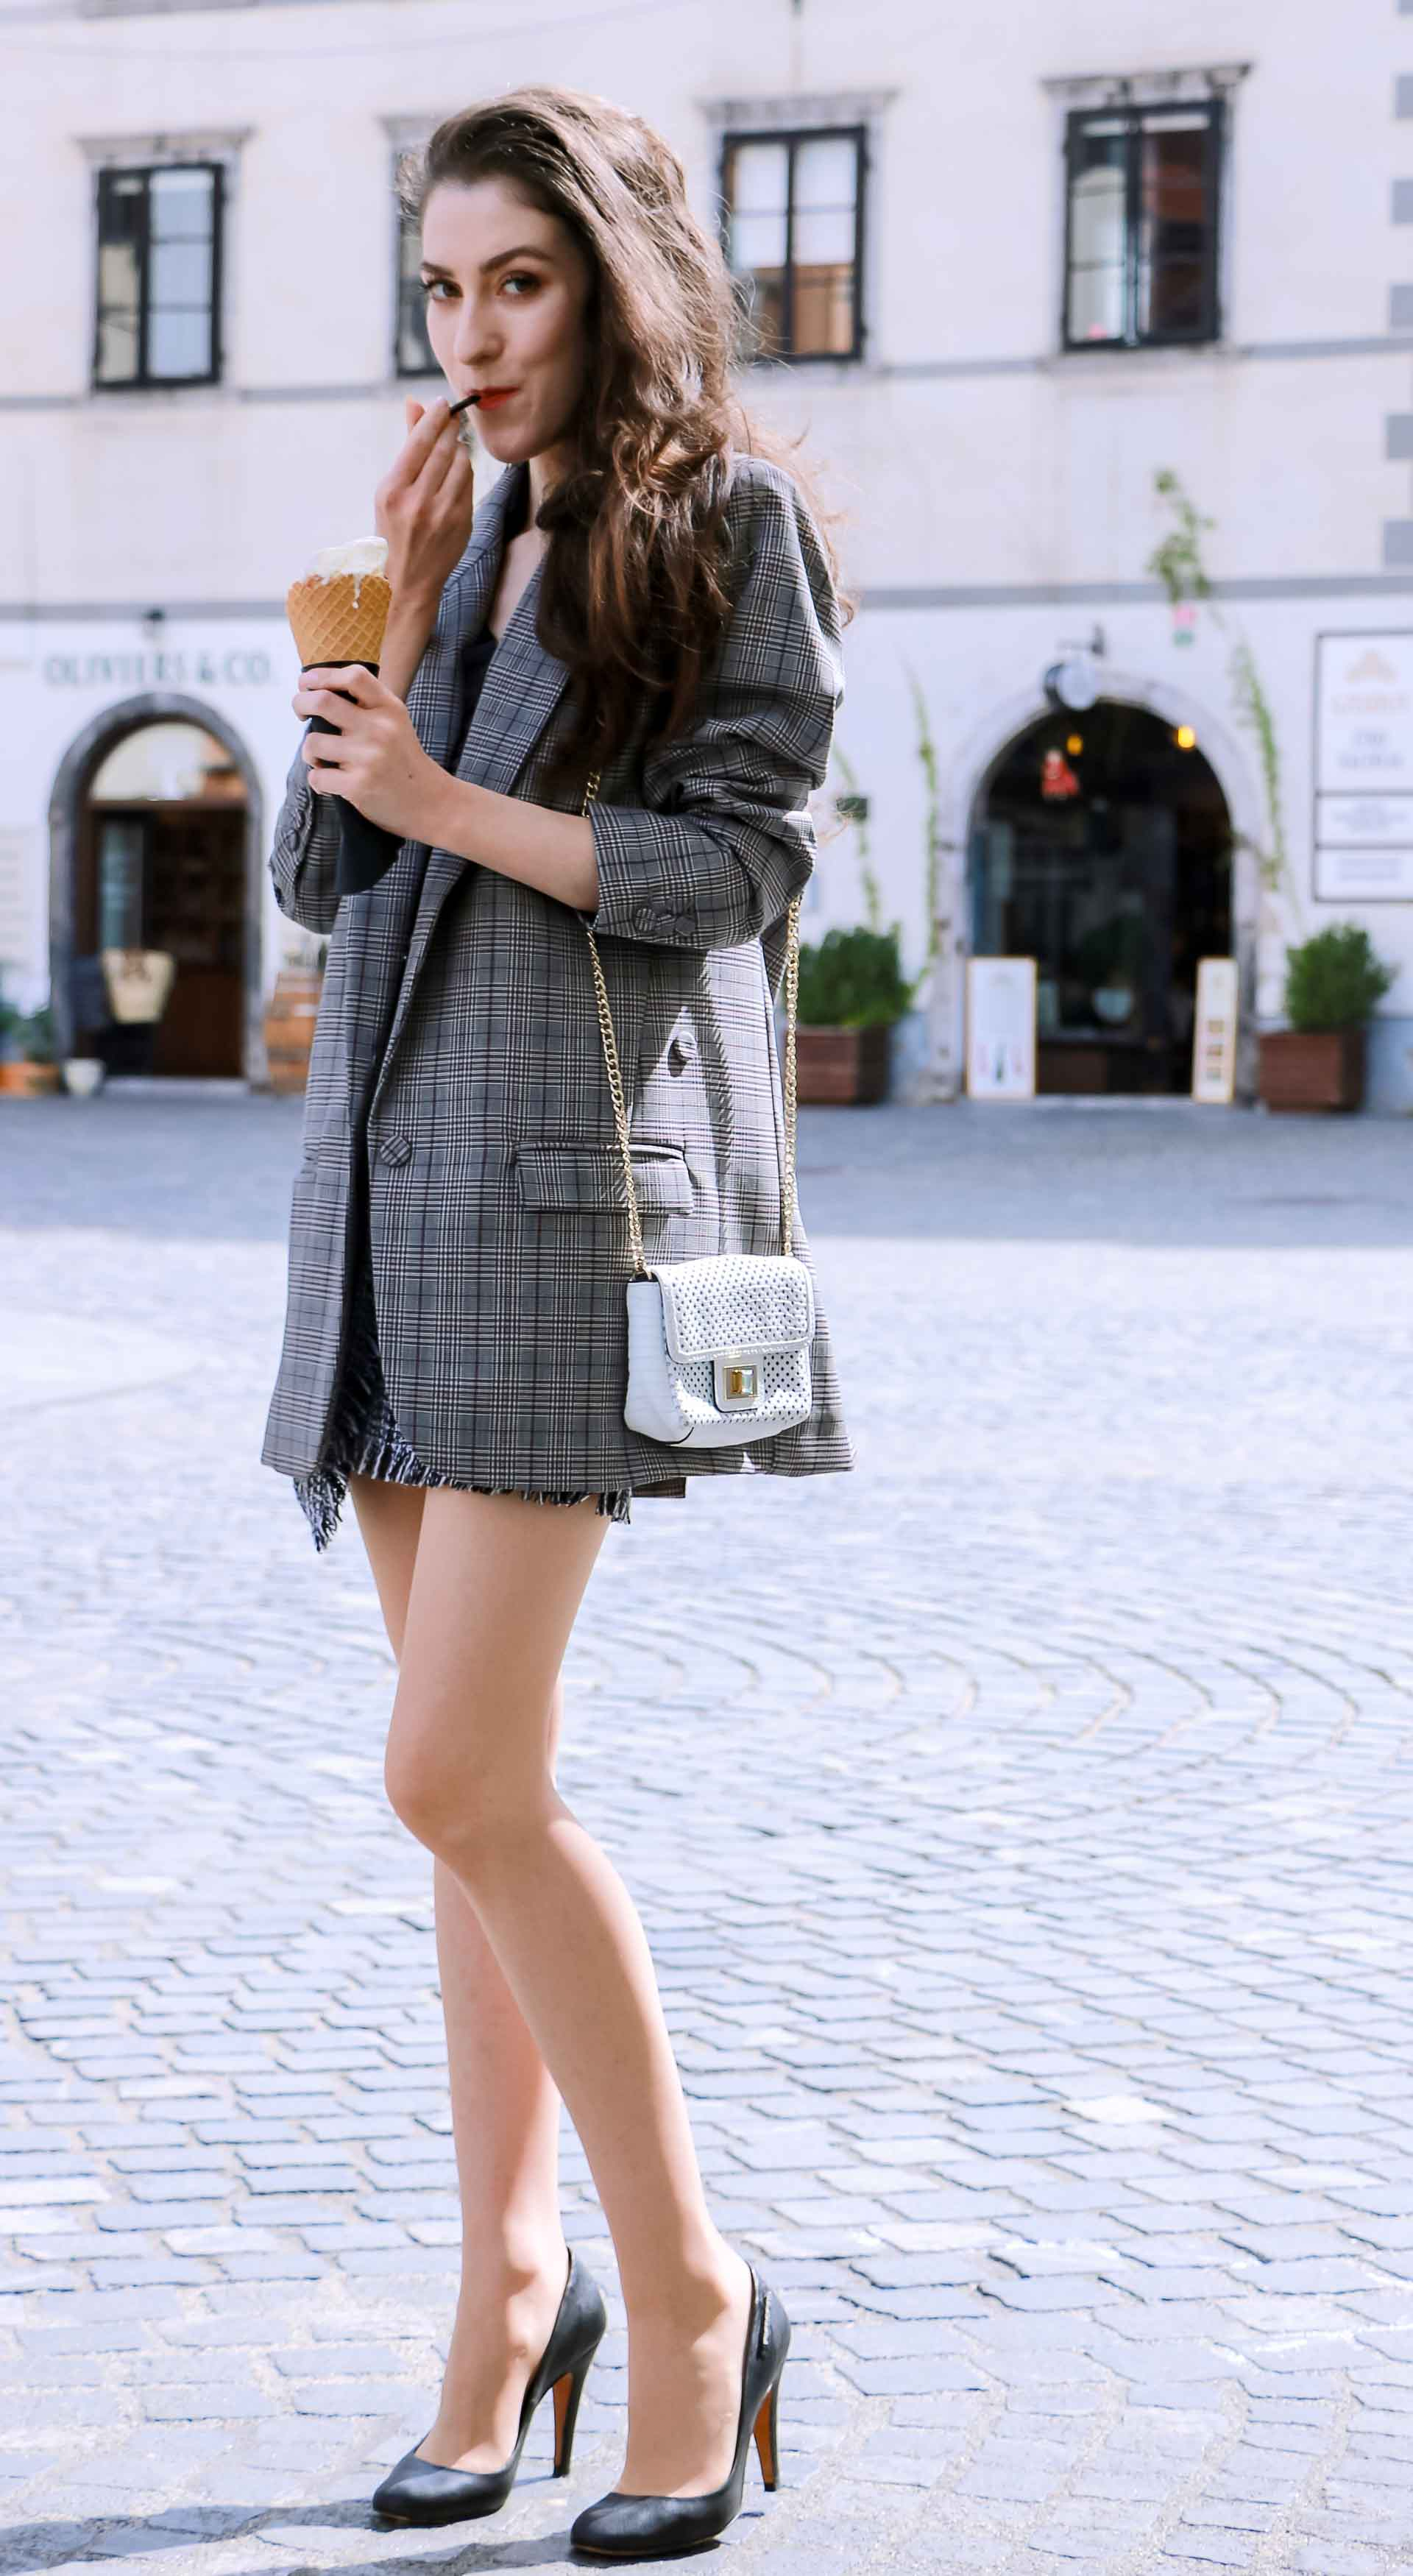 Fashion Blogger Veronika Lipar of Brunette from Wall Street wearing Erika Cavallini oversized boyfriend checked blazer with short tweed black and white mini skirt from streets, black pumps and white chain strap shoulder bag while standing down the street in Ljubljana with ice cream in her hand